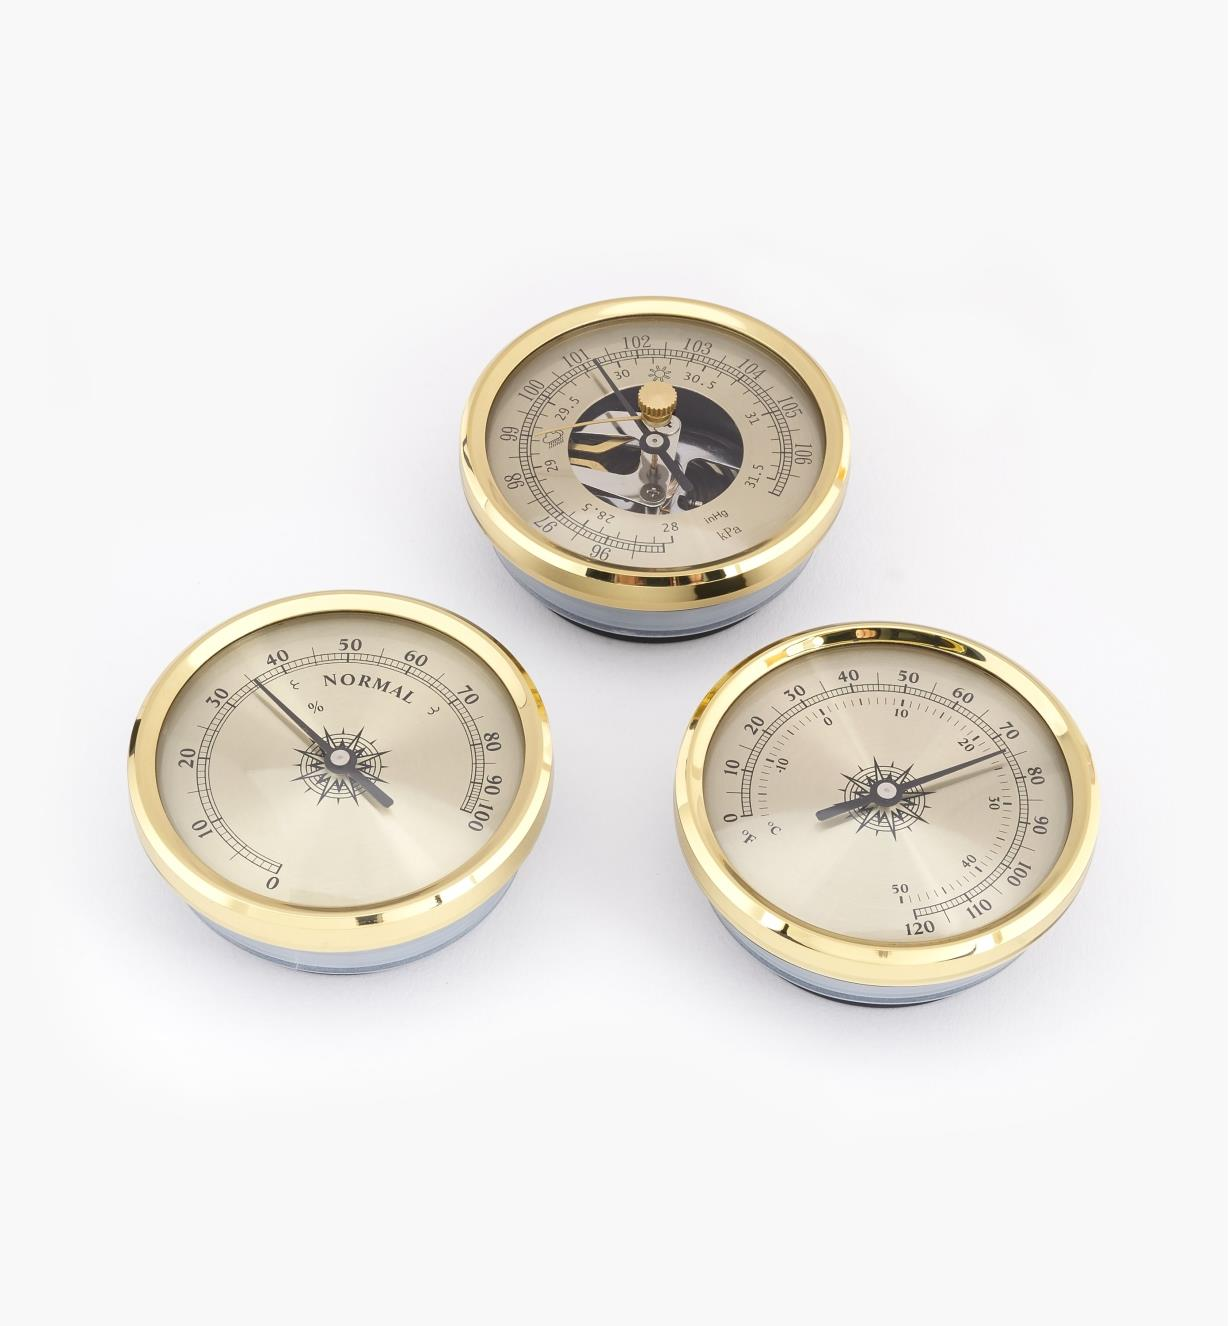 46K7030 - Set of 3 Brass Weather Instruments